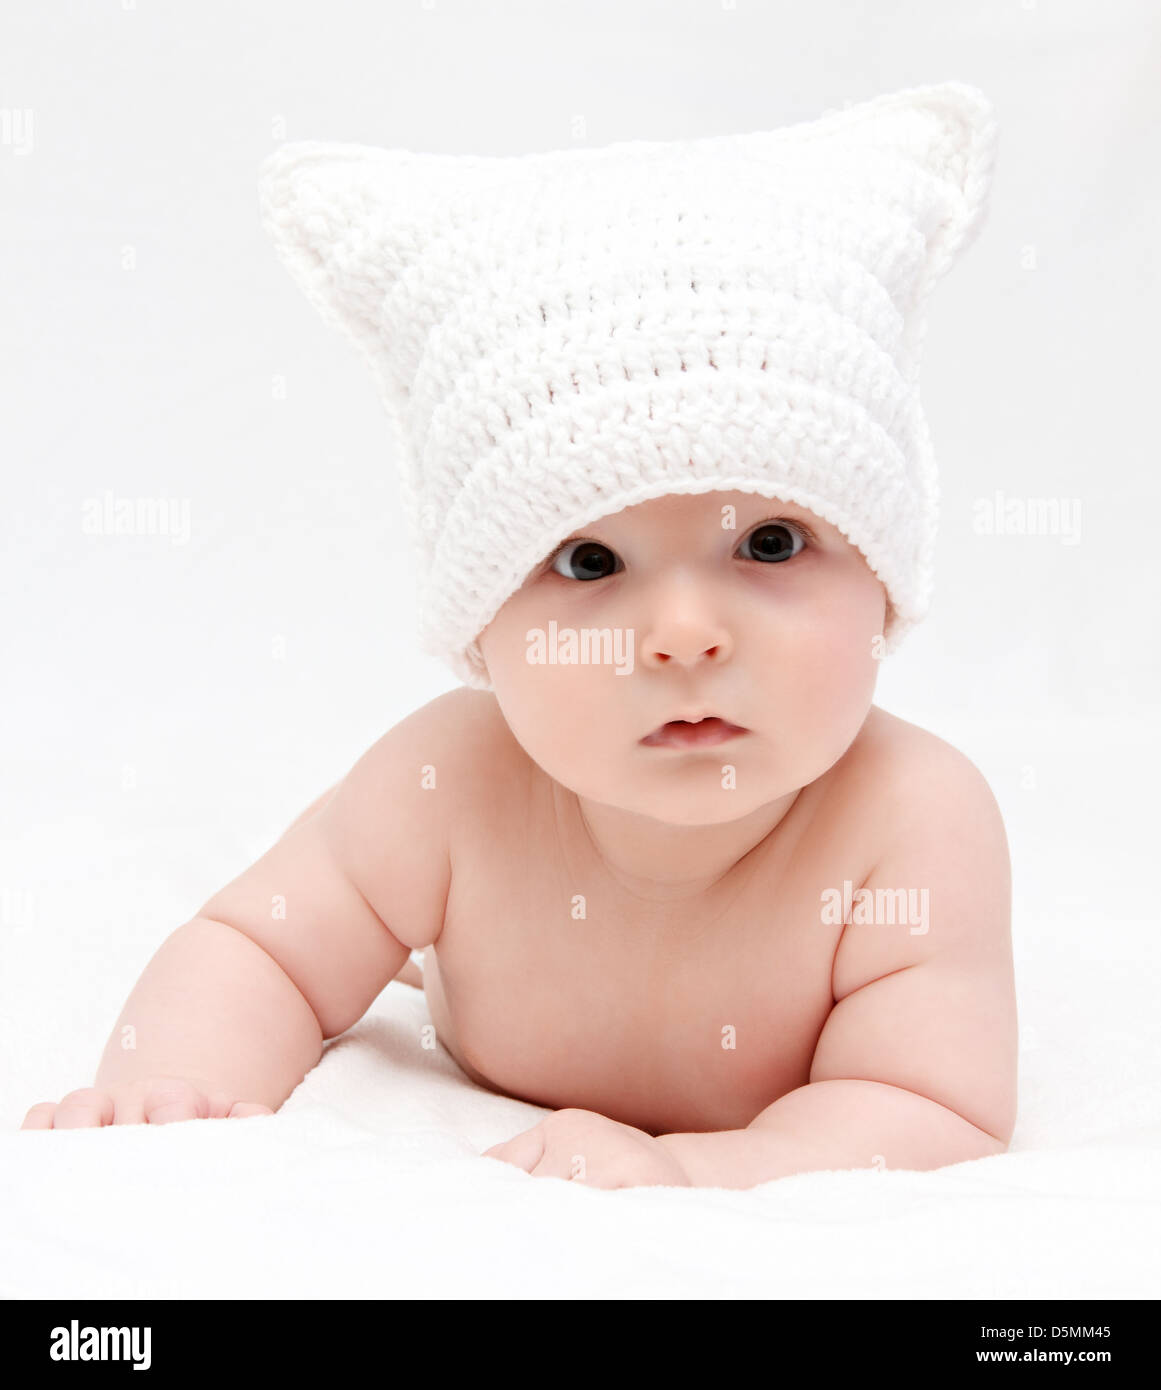 baby in white hat lies on bed - Stock Image